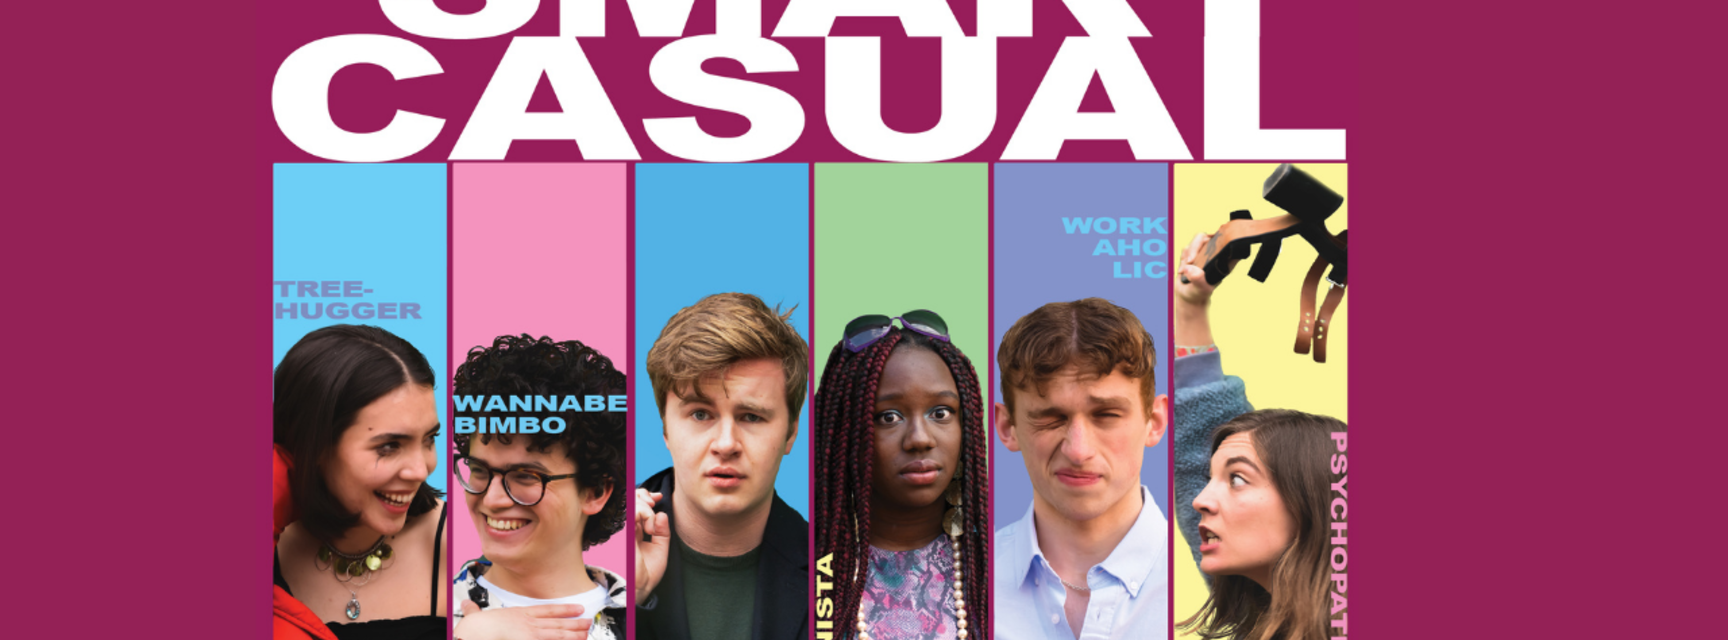 Poster for Smart Casual, featuring photos of six young people against pastel coloured backgrounds